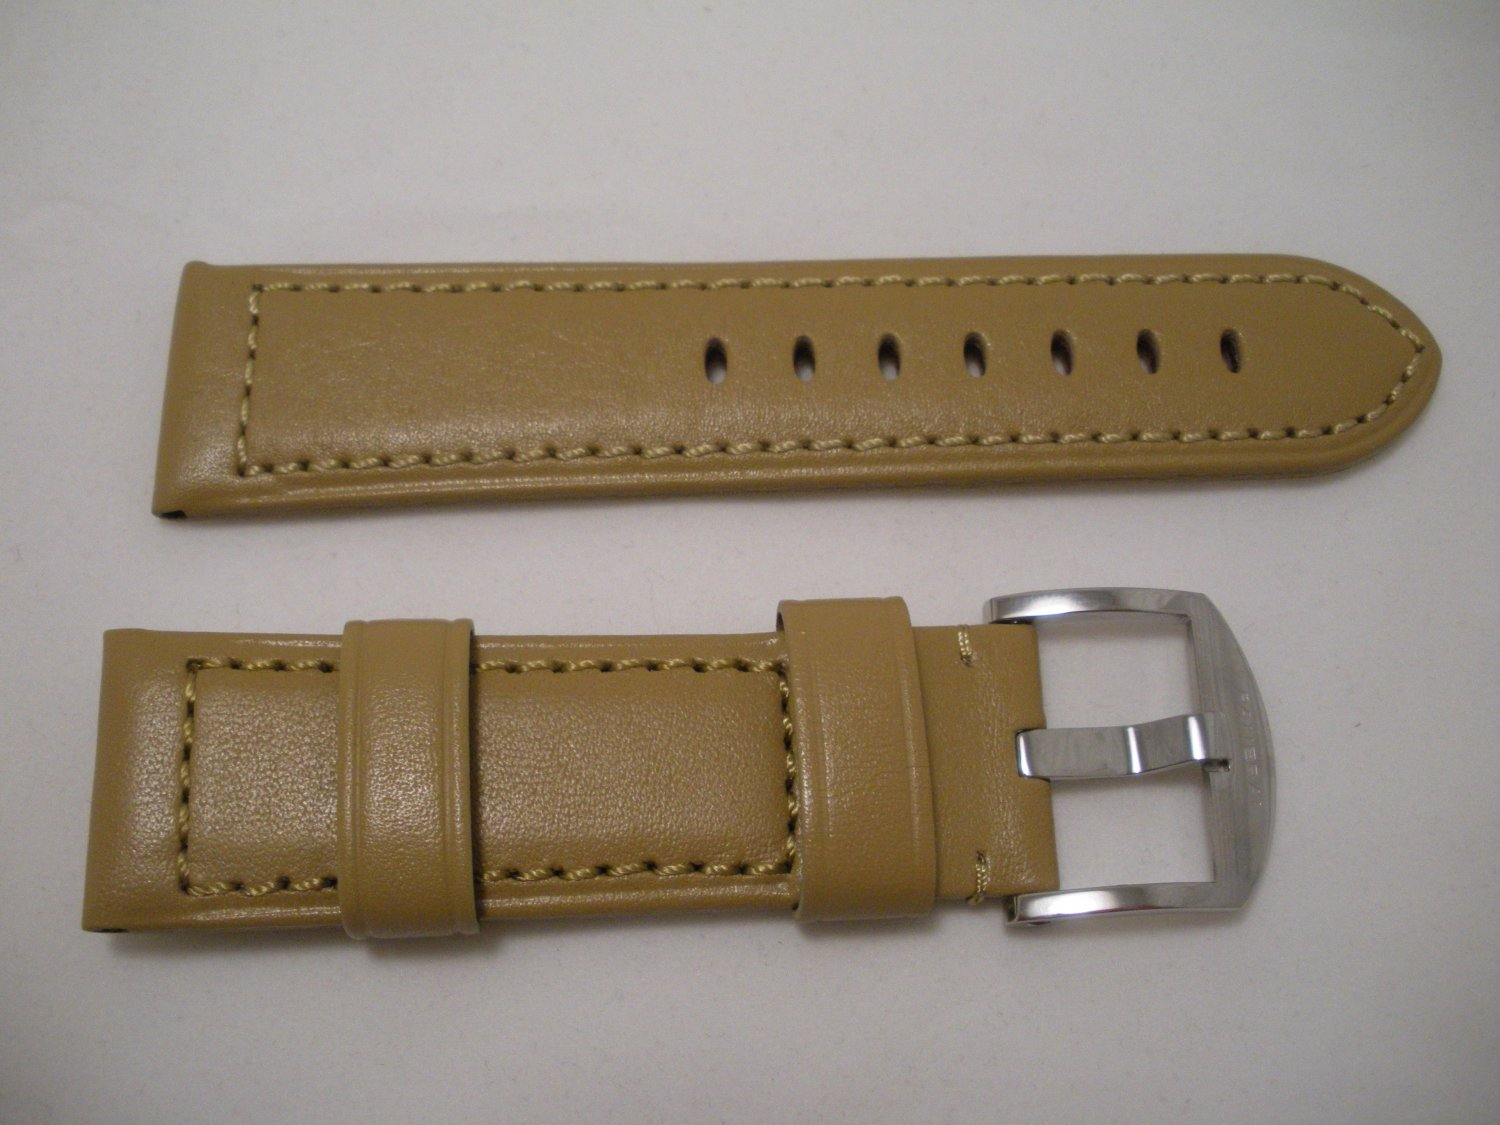 24mm Flat Tan Leather Strap w/ Buckle for Panerai